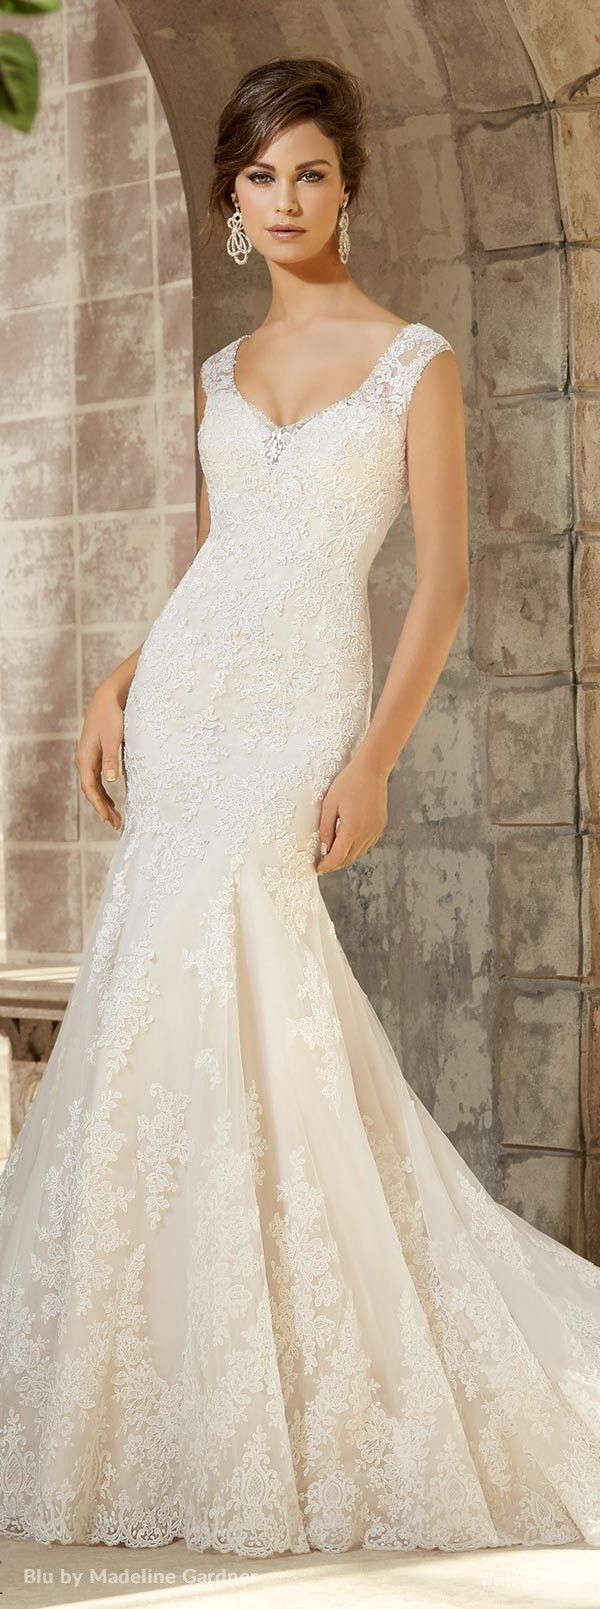 Pin by koren crosby on ideas pinterest wedding bridal gowns and